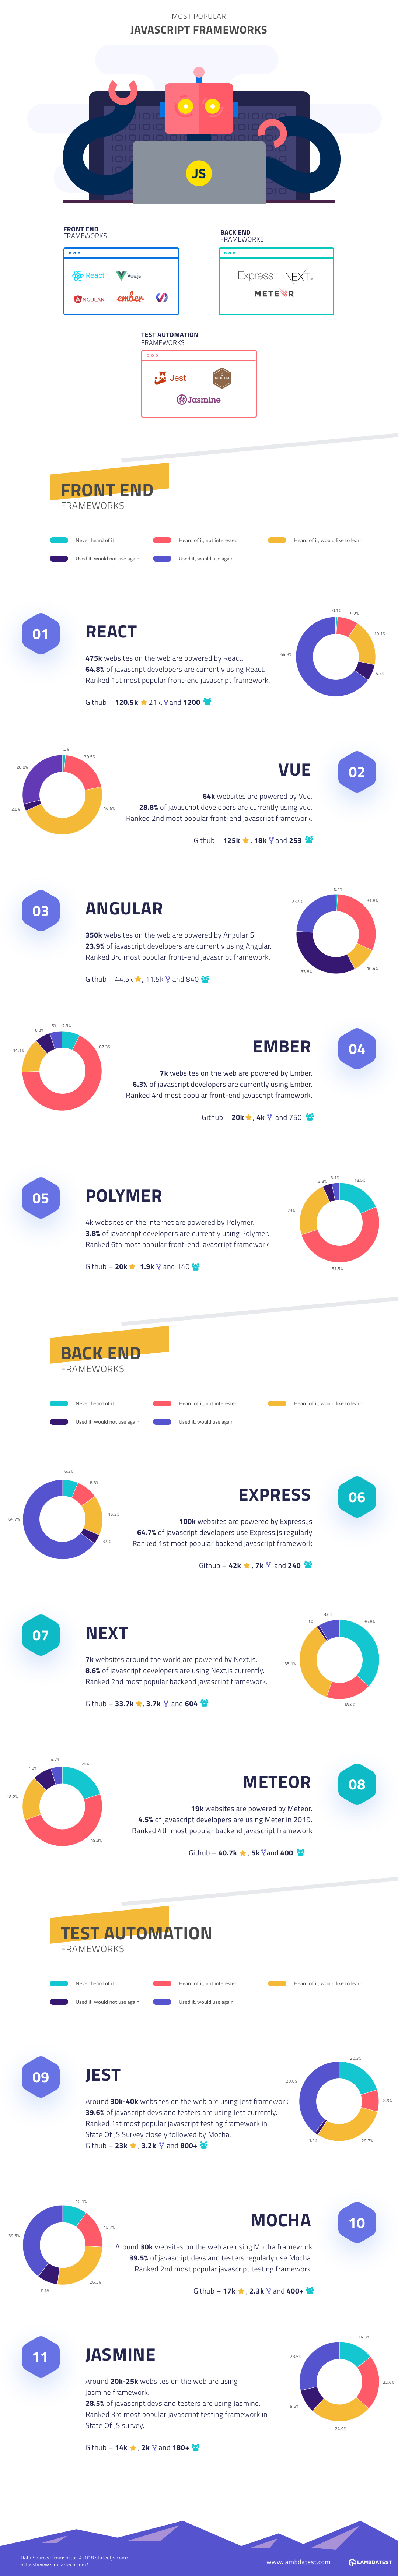 Infographic: Top JavaScript Frameworks To Look Out For In 2019